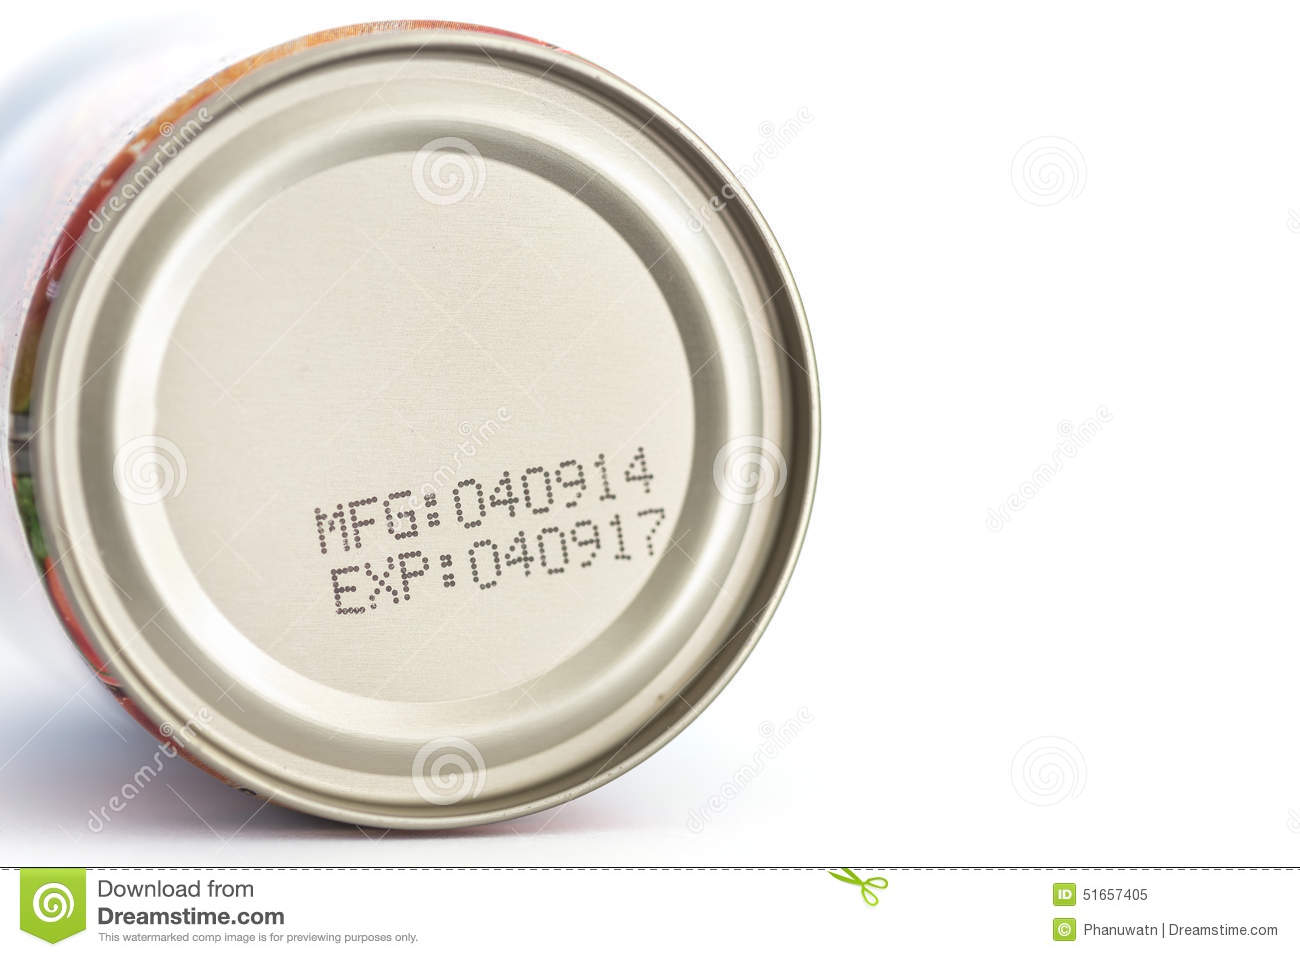 Is Canned Food That Expired Ok To Eat